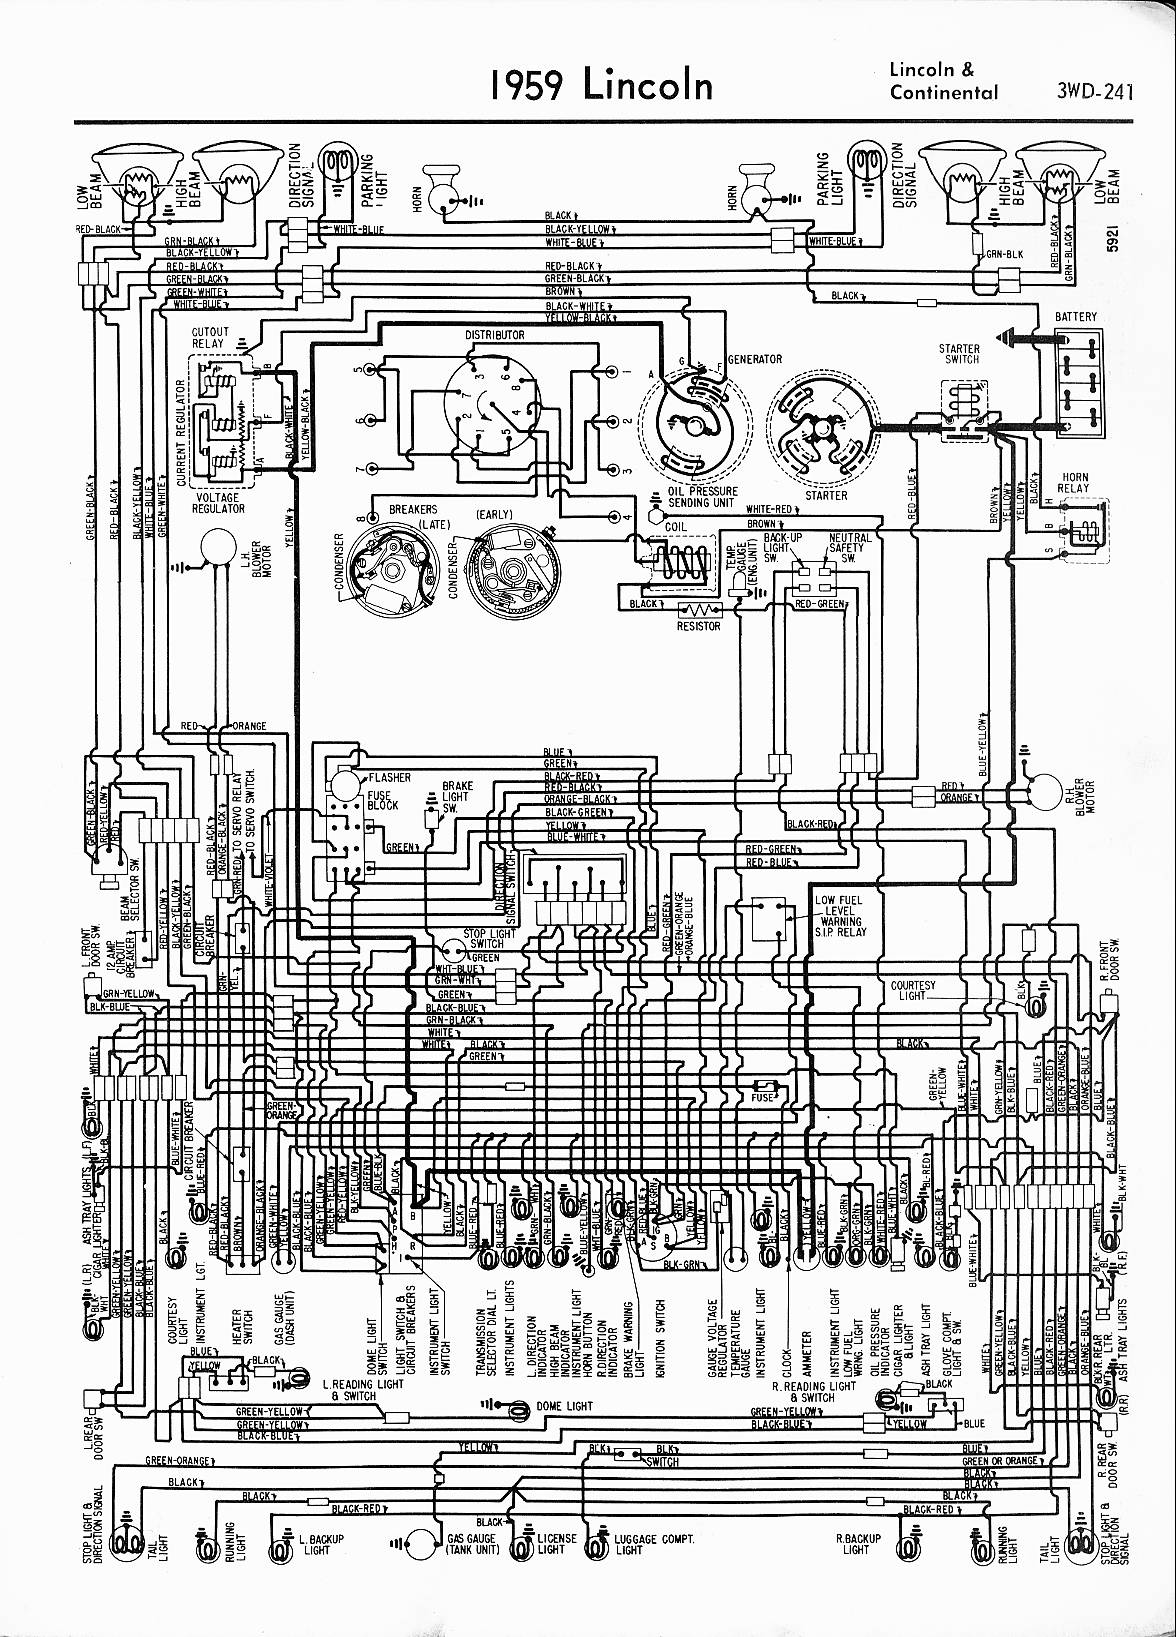 1973 Lincoln Continental Wiring Diagram Great Installation Of F100 Dash Illumination 1969 Third Level Rh 10 2 11 Jacobwinterstein Com Mark Iv Electric Diagrams